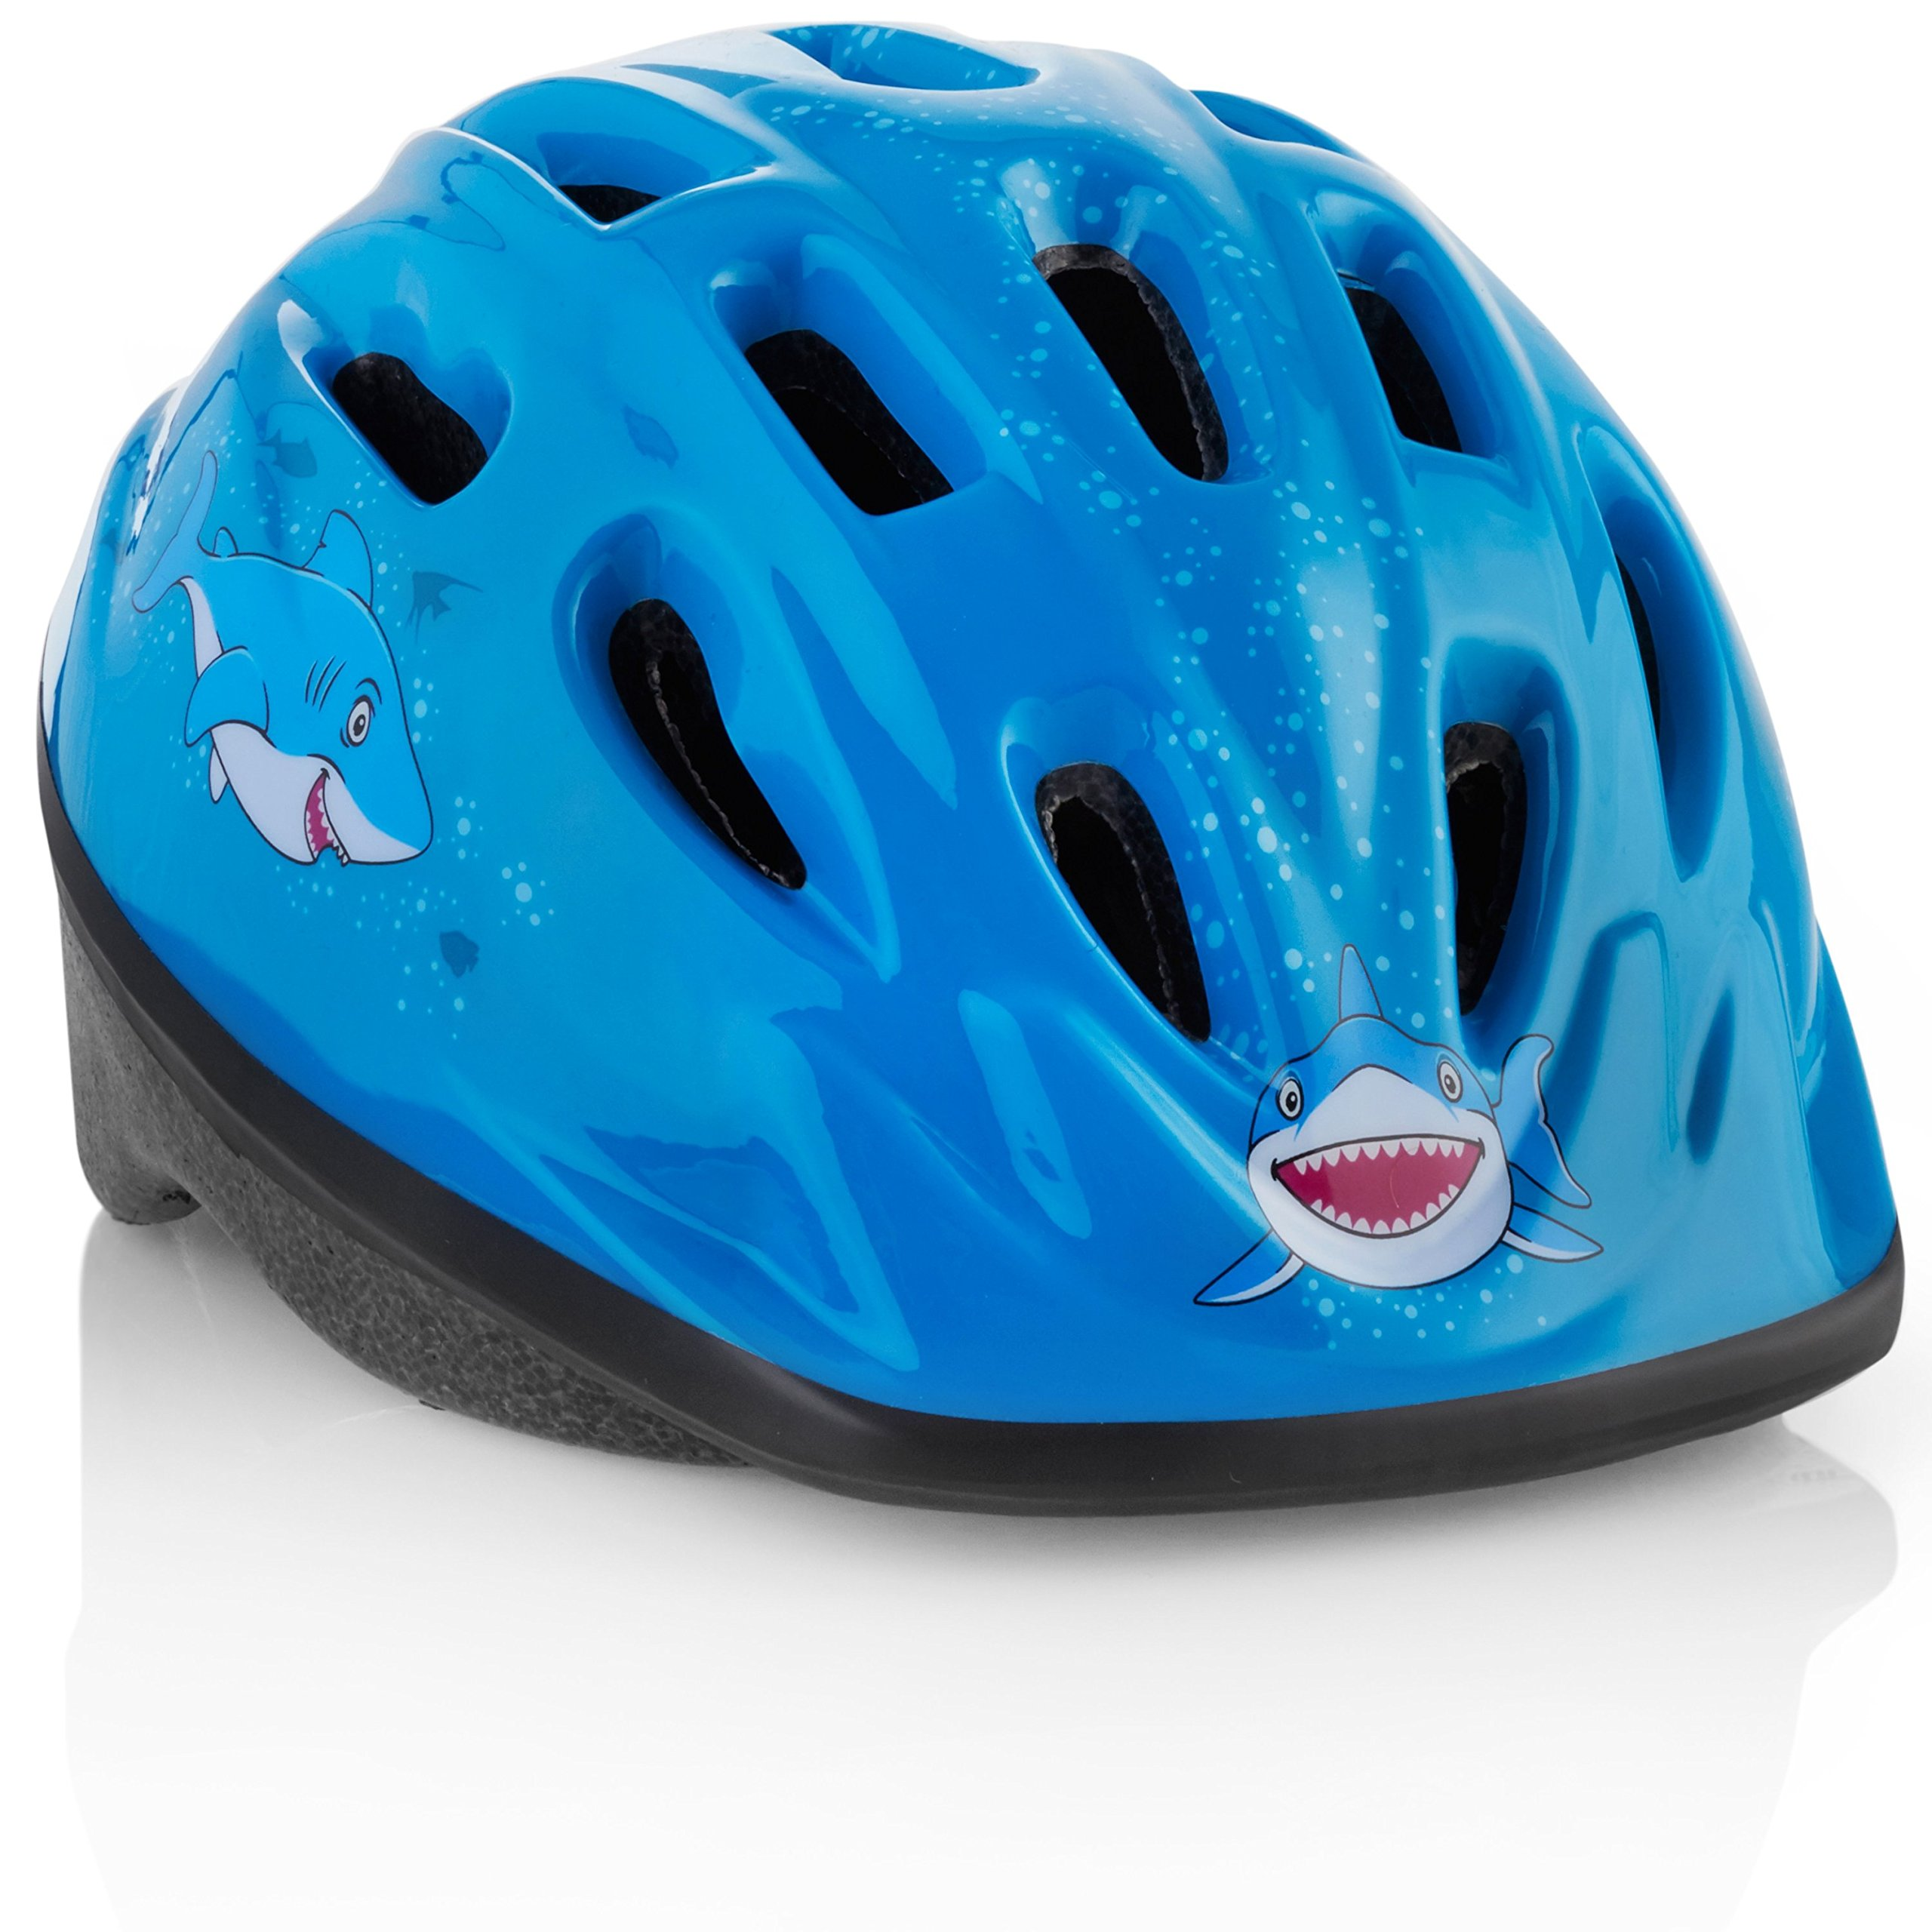 TeamObsidian KIDS Bike Helmet [ Blue Shark ] – Adjustable from Toddler to Youth Size, Ages 3-7 - Durable Kid Bicycle Helmets with Fun Aquatic Design Boys will LOVE - CSPC Certified - FunWave